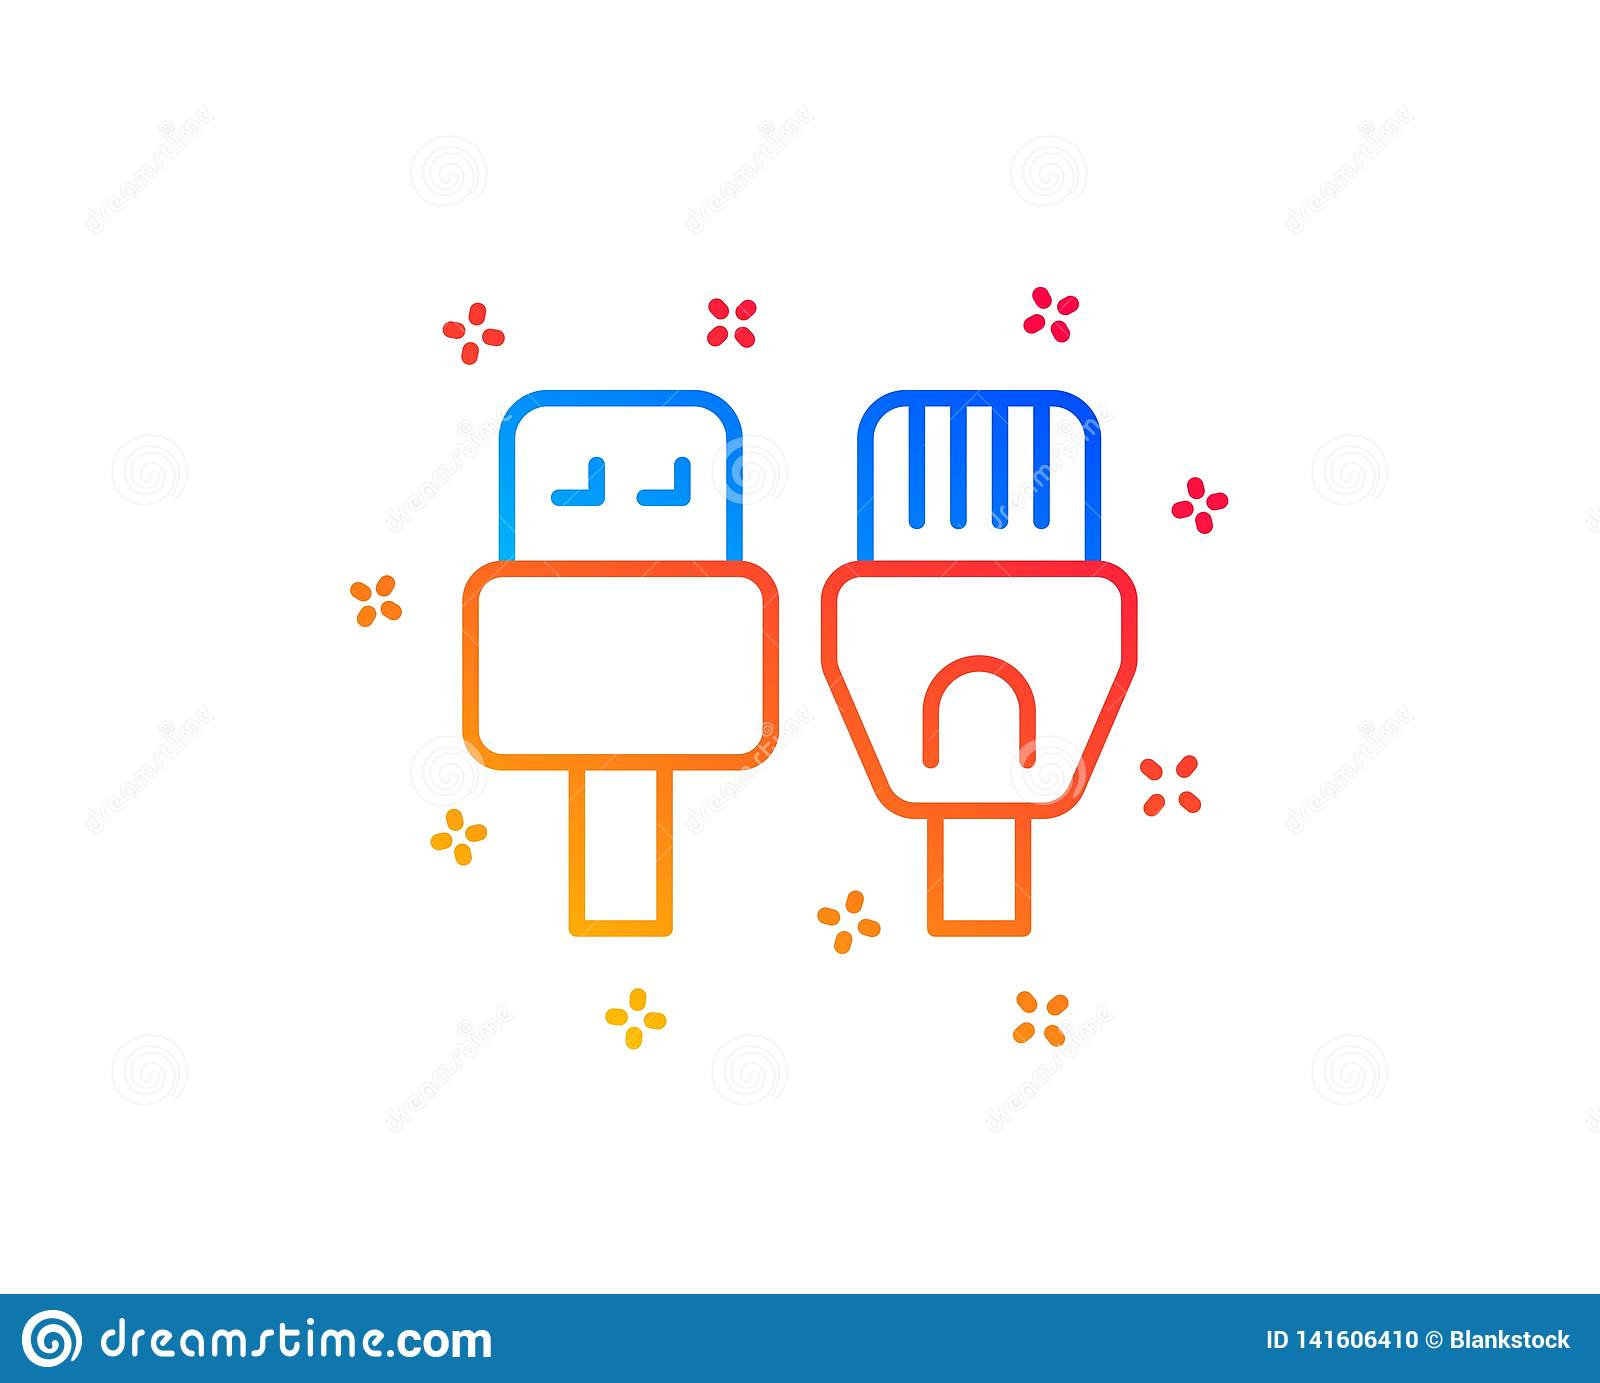 hight resolution of usb rj45 connection wires sign vector